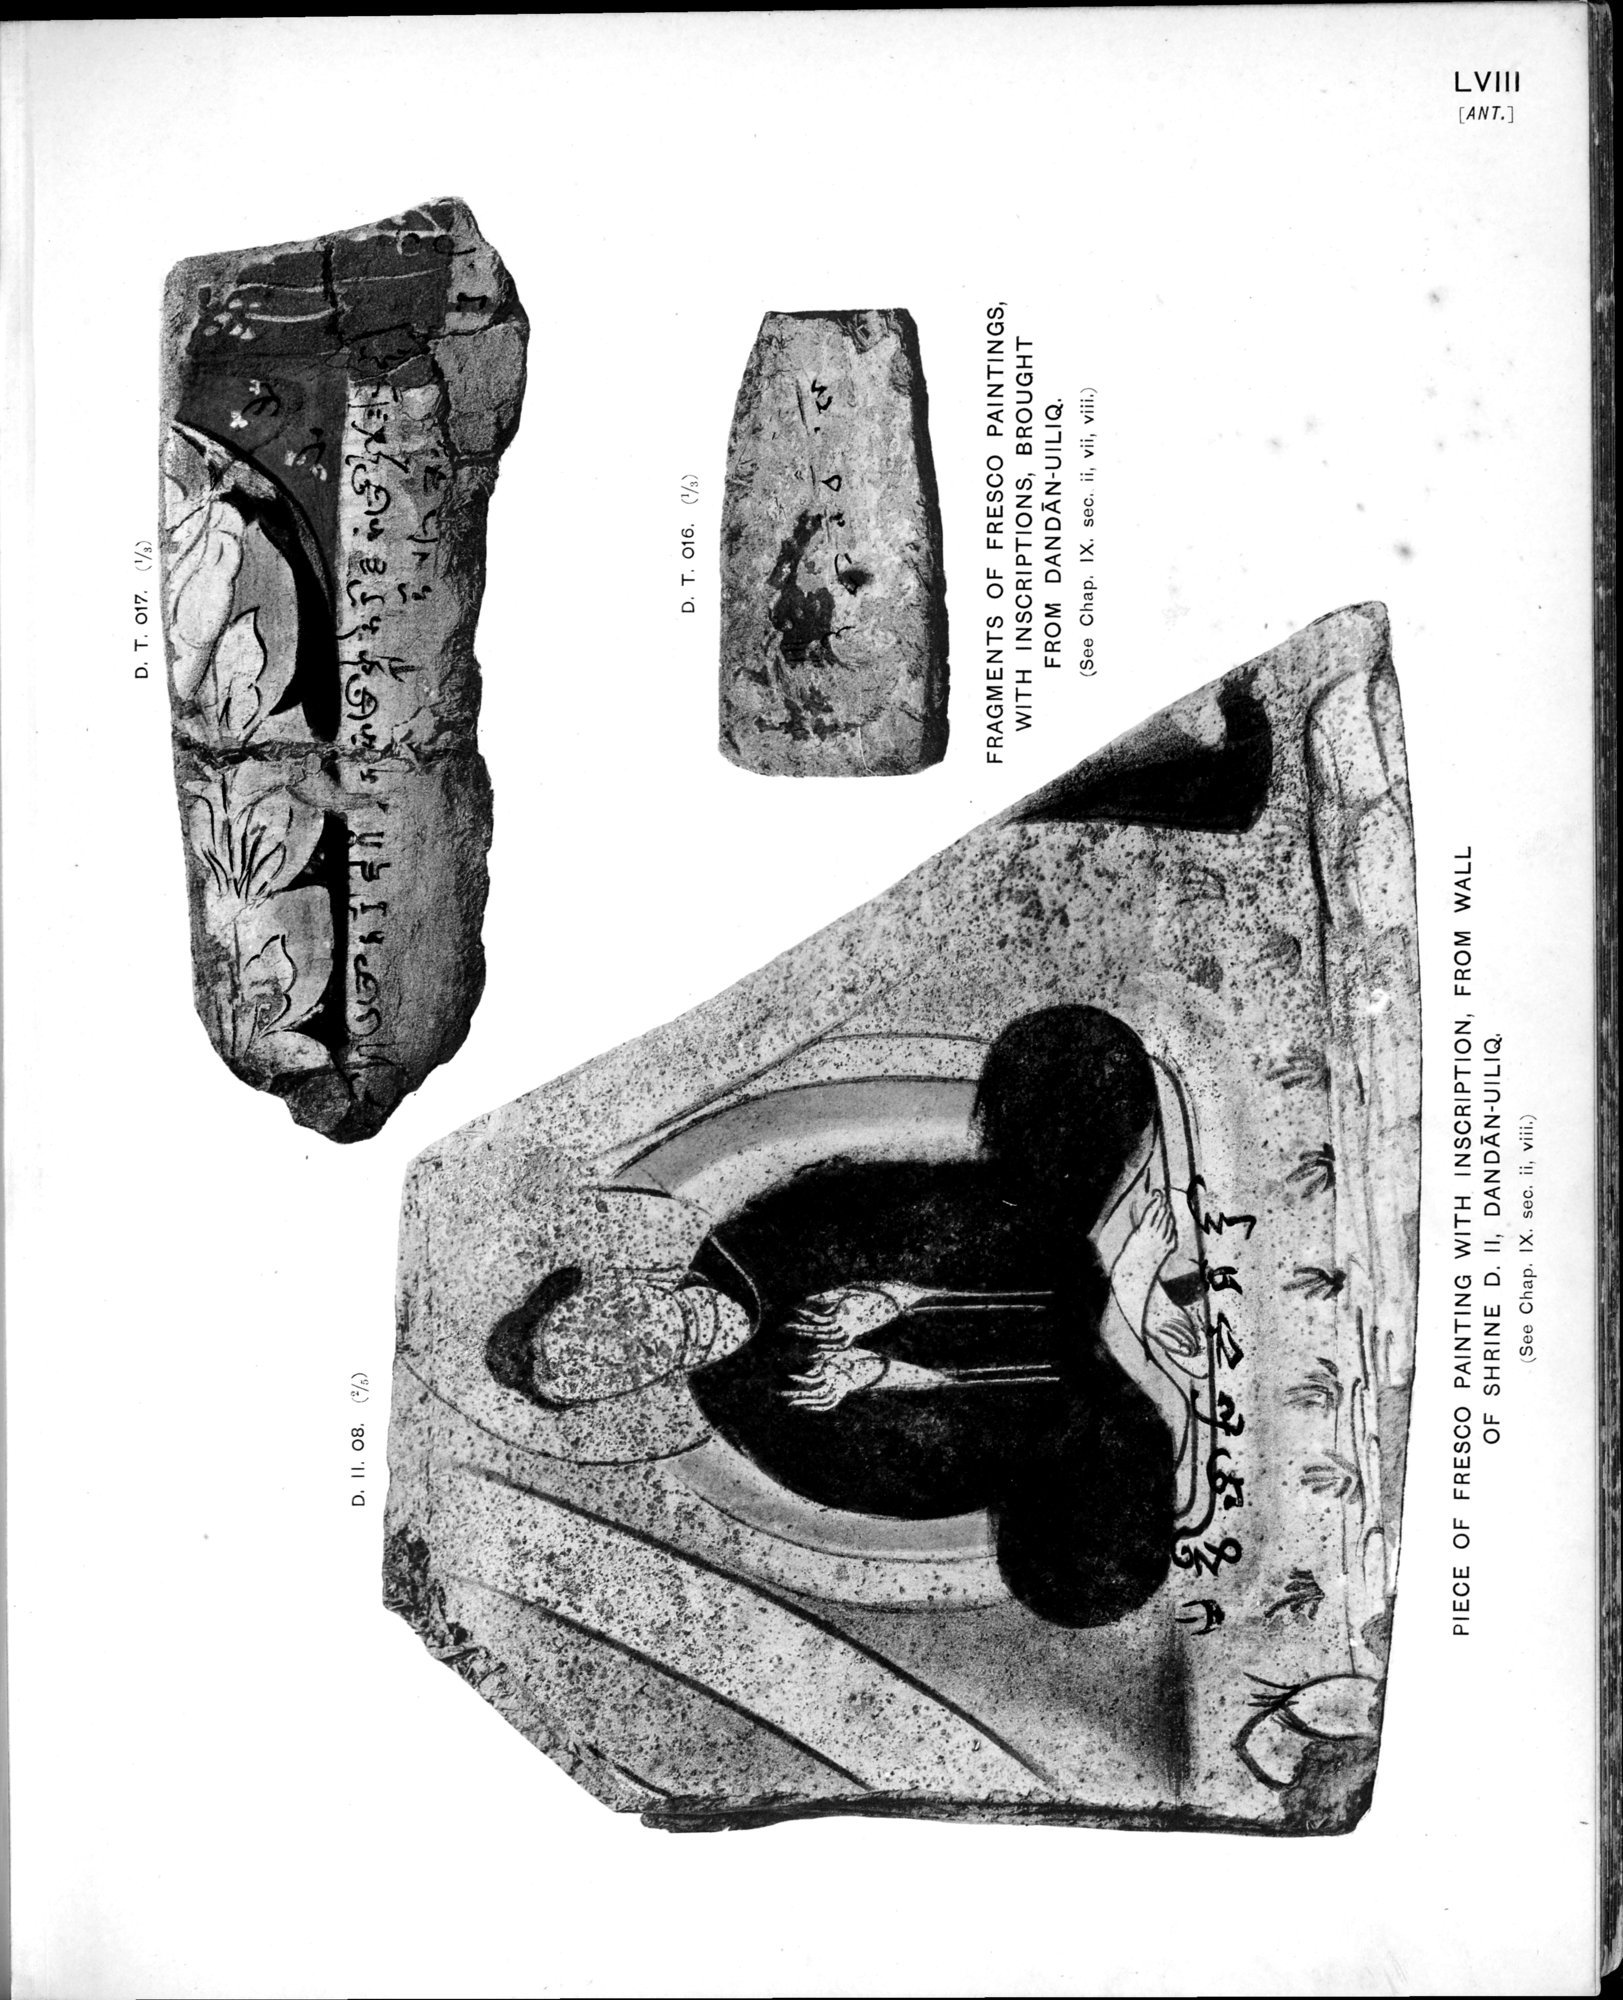 Ancient Khotan : vol.2 / Page 127 (Grayscale High Resolution Image)